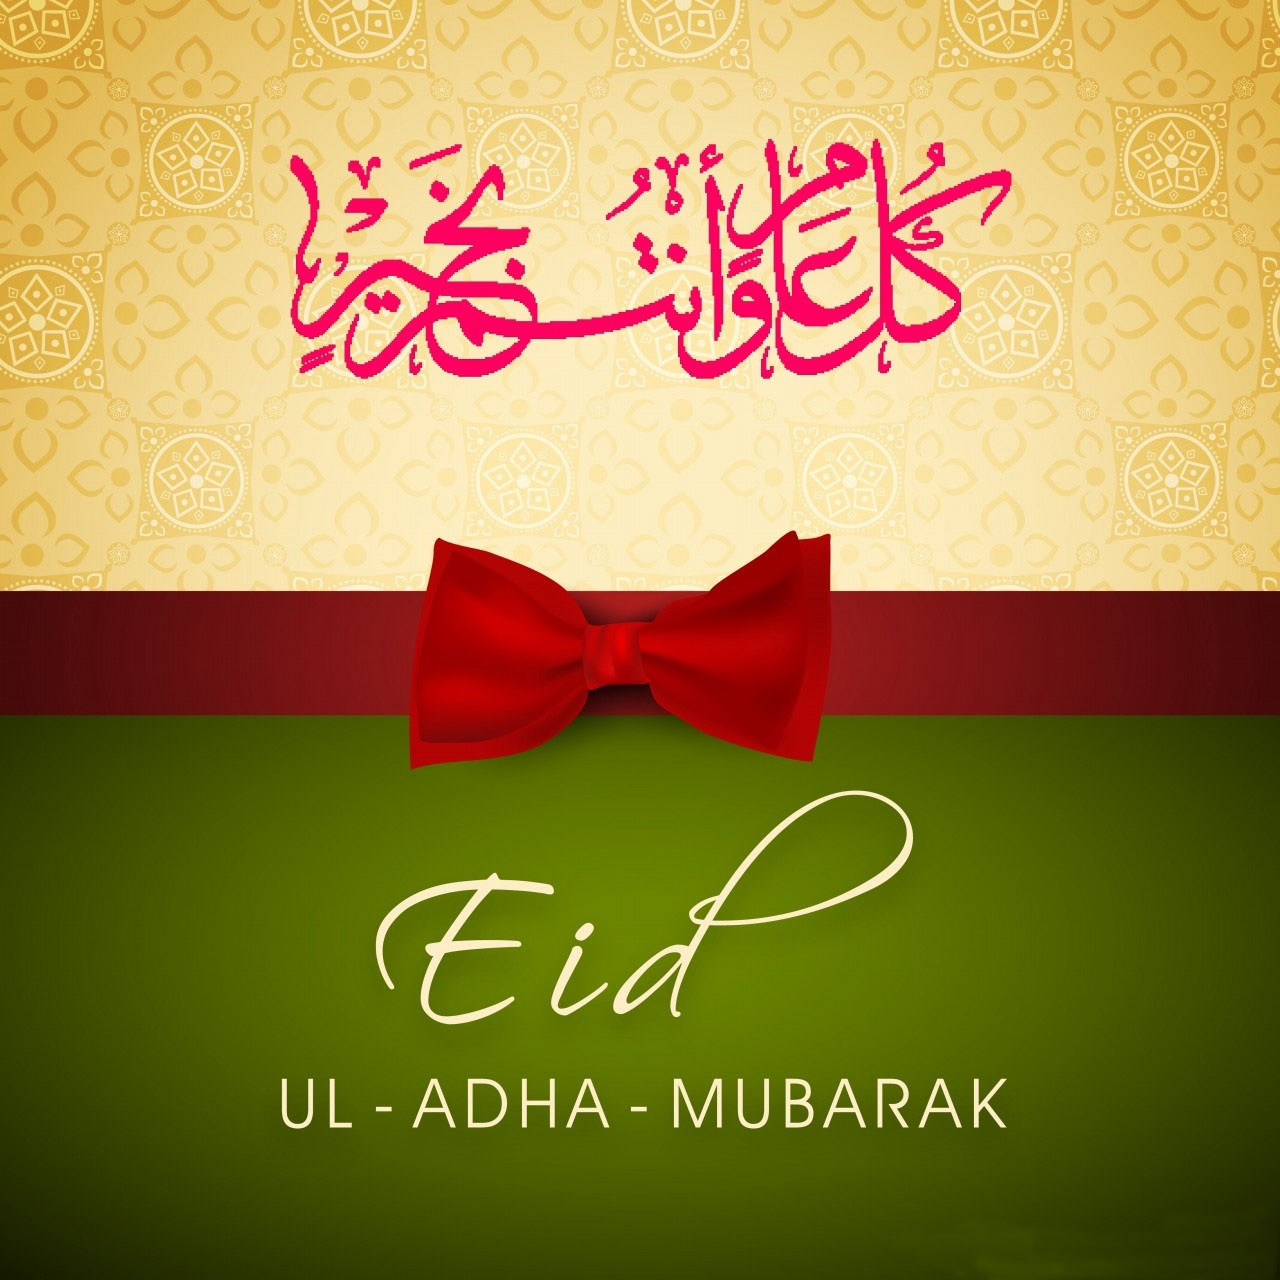 Eid Adha Greetings In Arabic 2015